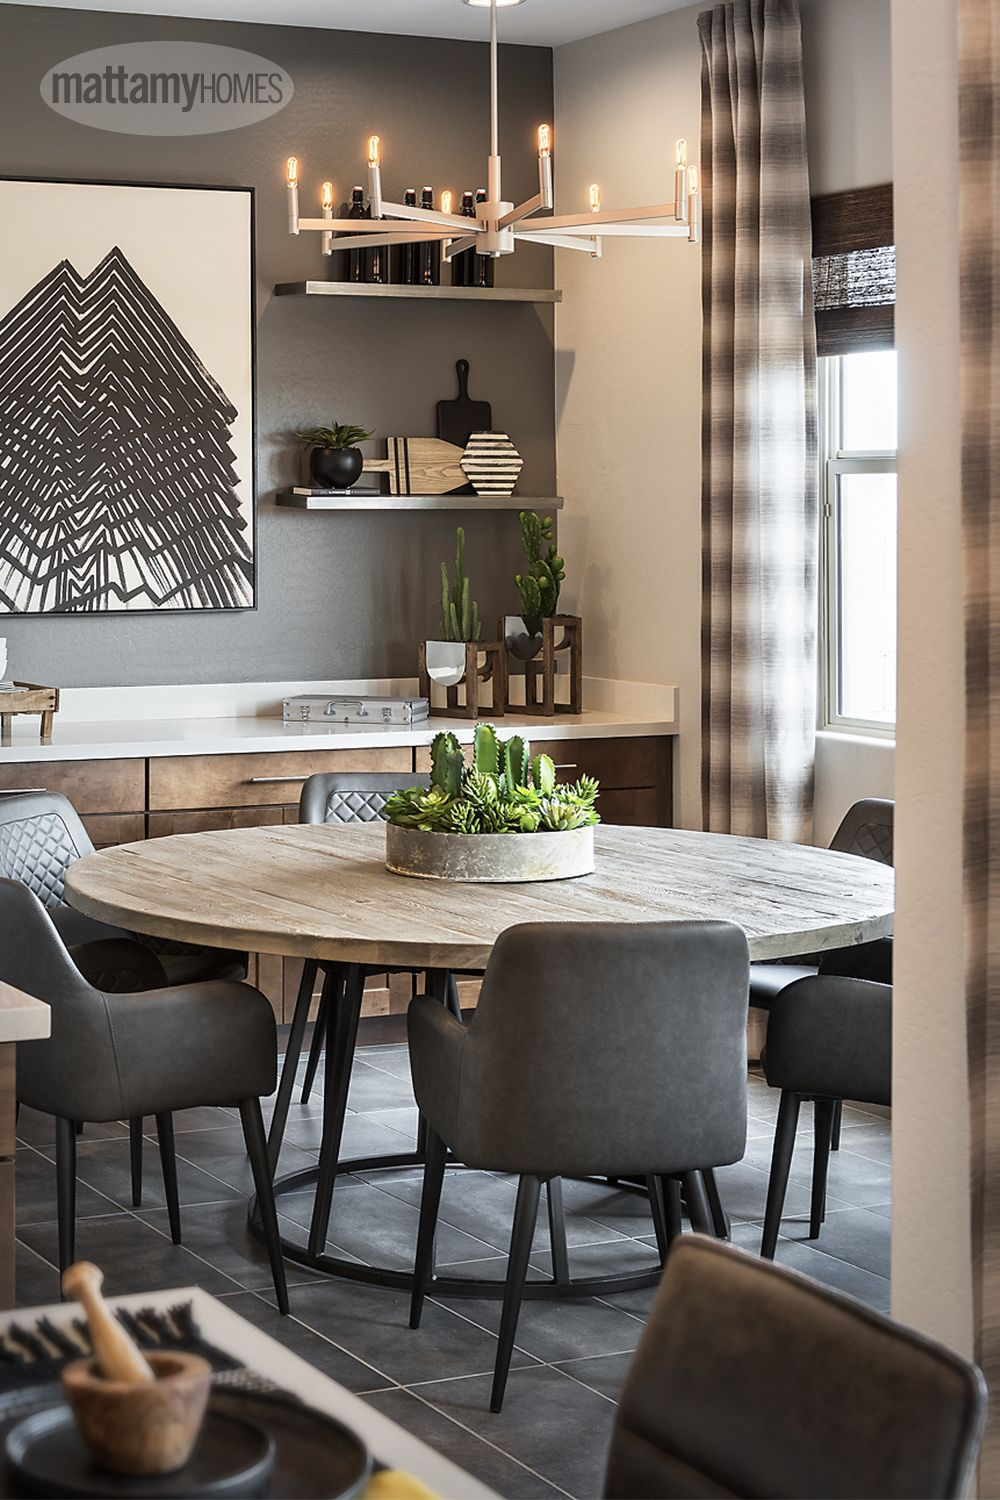 Let a stunning centrepiece take centre stage in your dining room. Hints of fresh greenery can tie the space together and add a little vibrancy to an industrial colour palette.nn#MattamyHomes #DiningRoom #DiningtableDecor #PlantDecor #HomeDecor